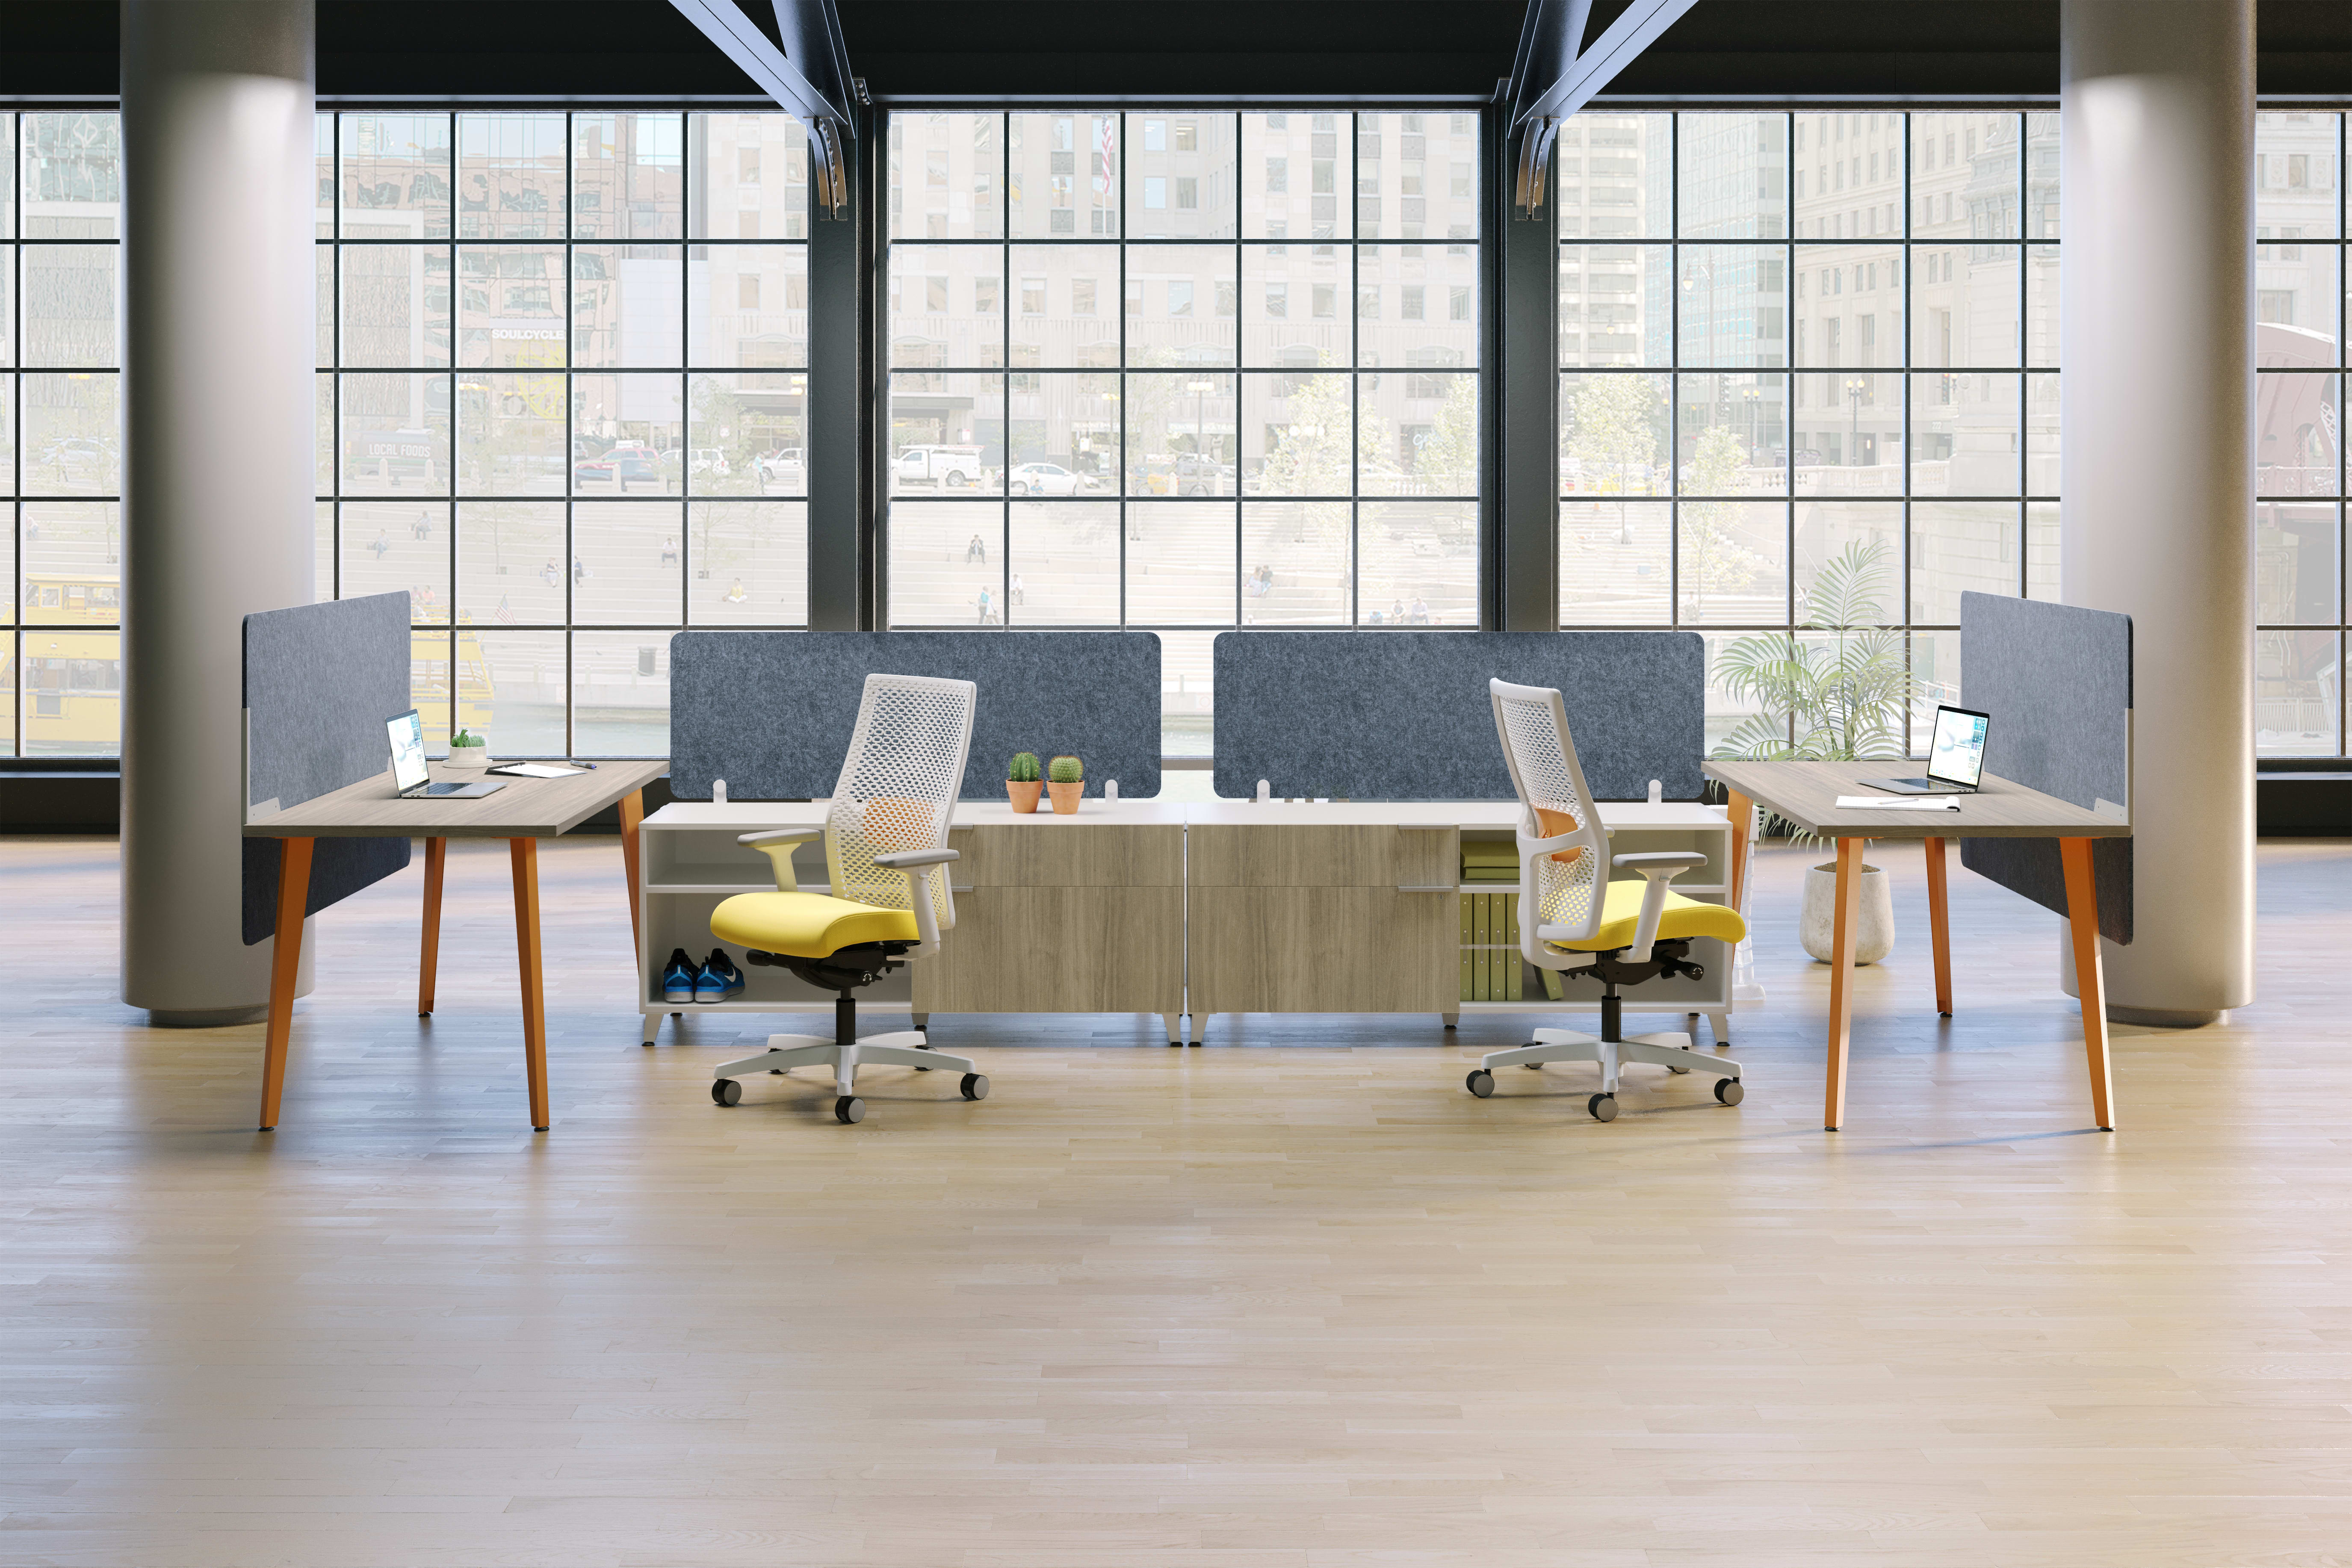 Ignition task chairs at Voi desks in an open space